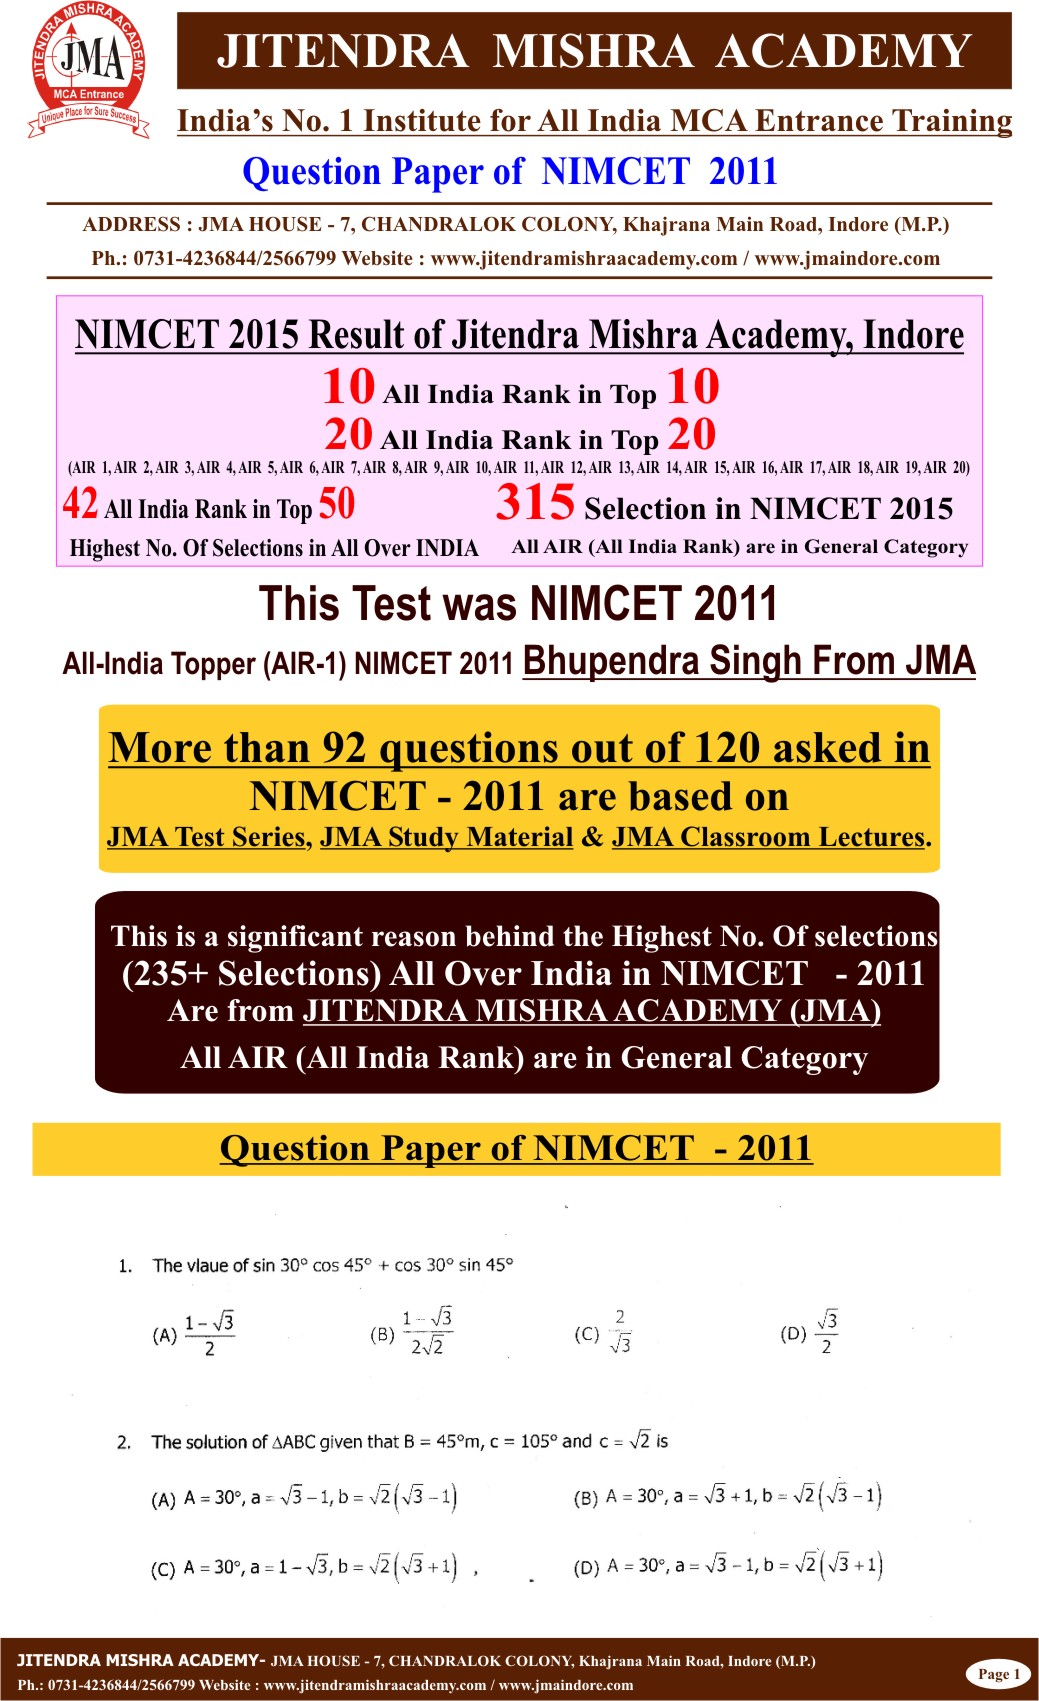 NIMCET - 2011 (FIRST PAGE)